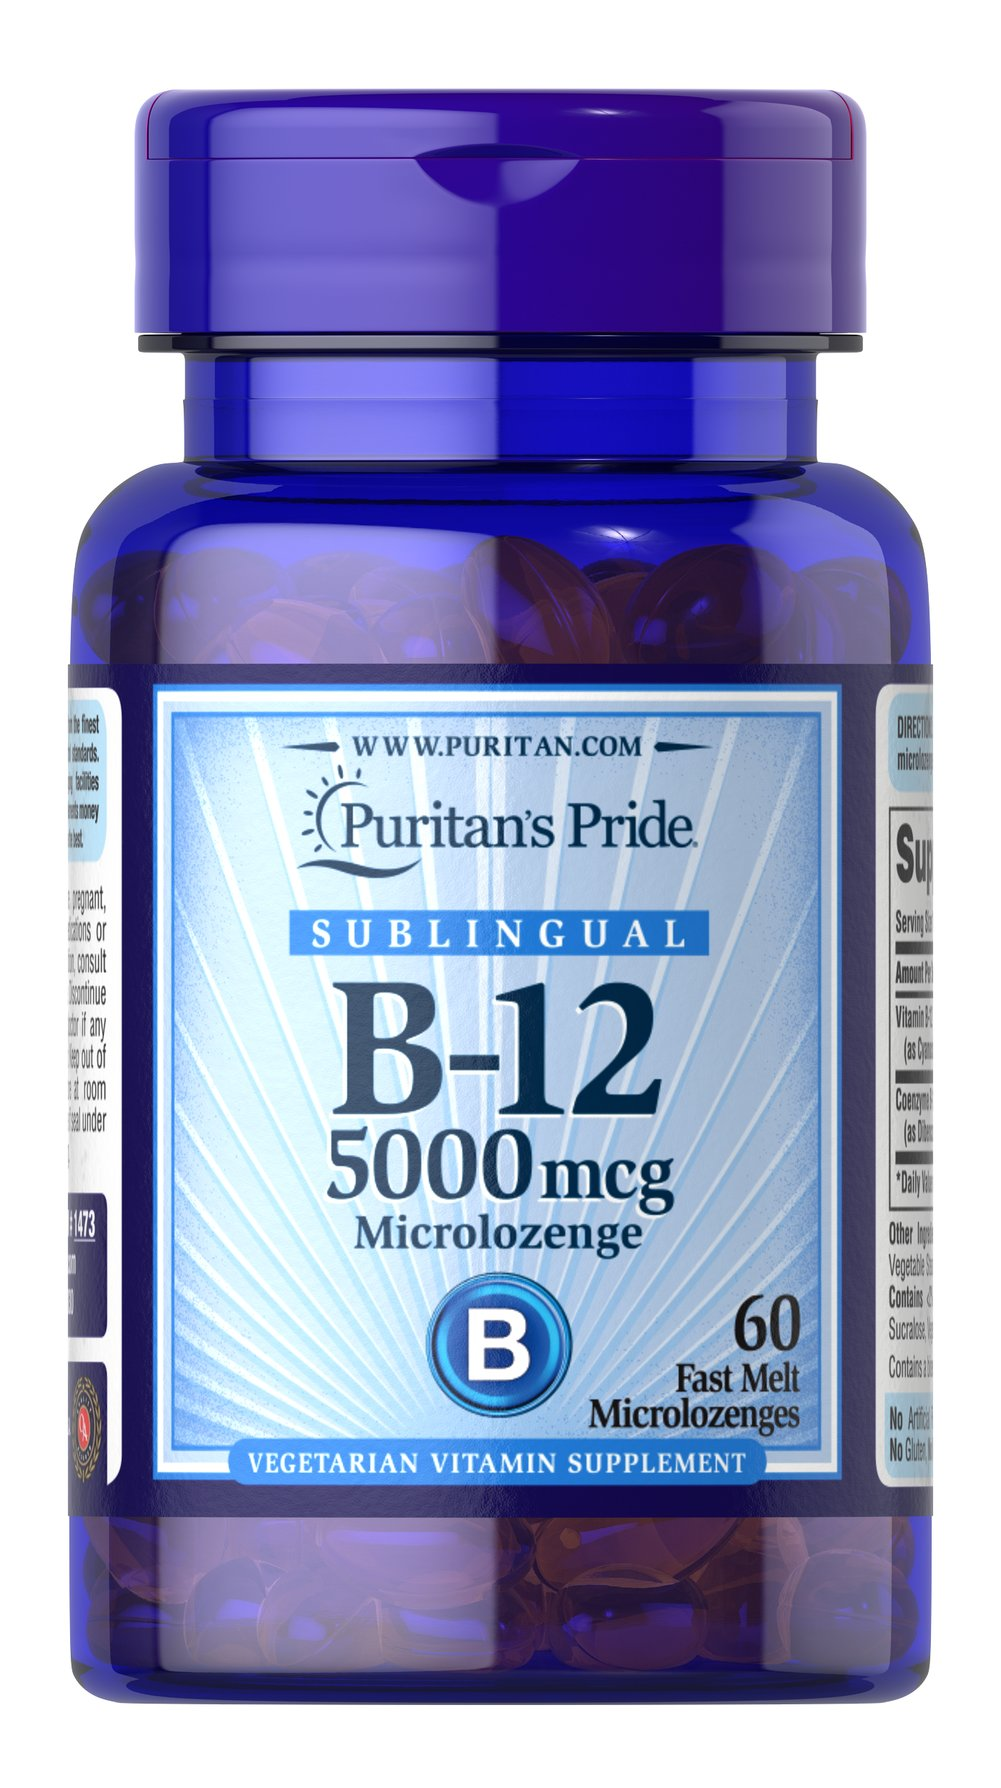 Vitamin B-12 5000 mcg Sublingual <p>Puritan's Pride's unique B-12  lozenges and dots deliver essential B vitamins for energy metabolism in the body.** Vitamin B-12 is also essential for the normal formation of blood cells, contributes to the health of the nervous system, and helps maintain circulatory health.** Adults can take one lozenge or dot daily with a meal. Place lozenge or dot under tongue for 30 seconds before swallowing.</p> 60 Microlozenges 5000 mcg $17.99